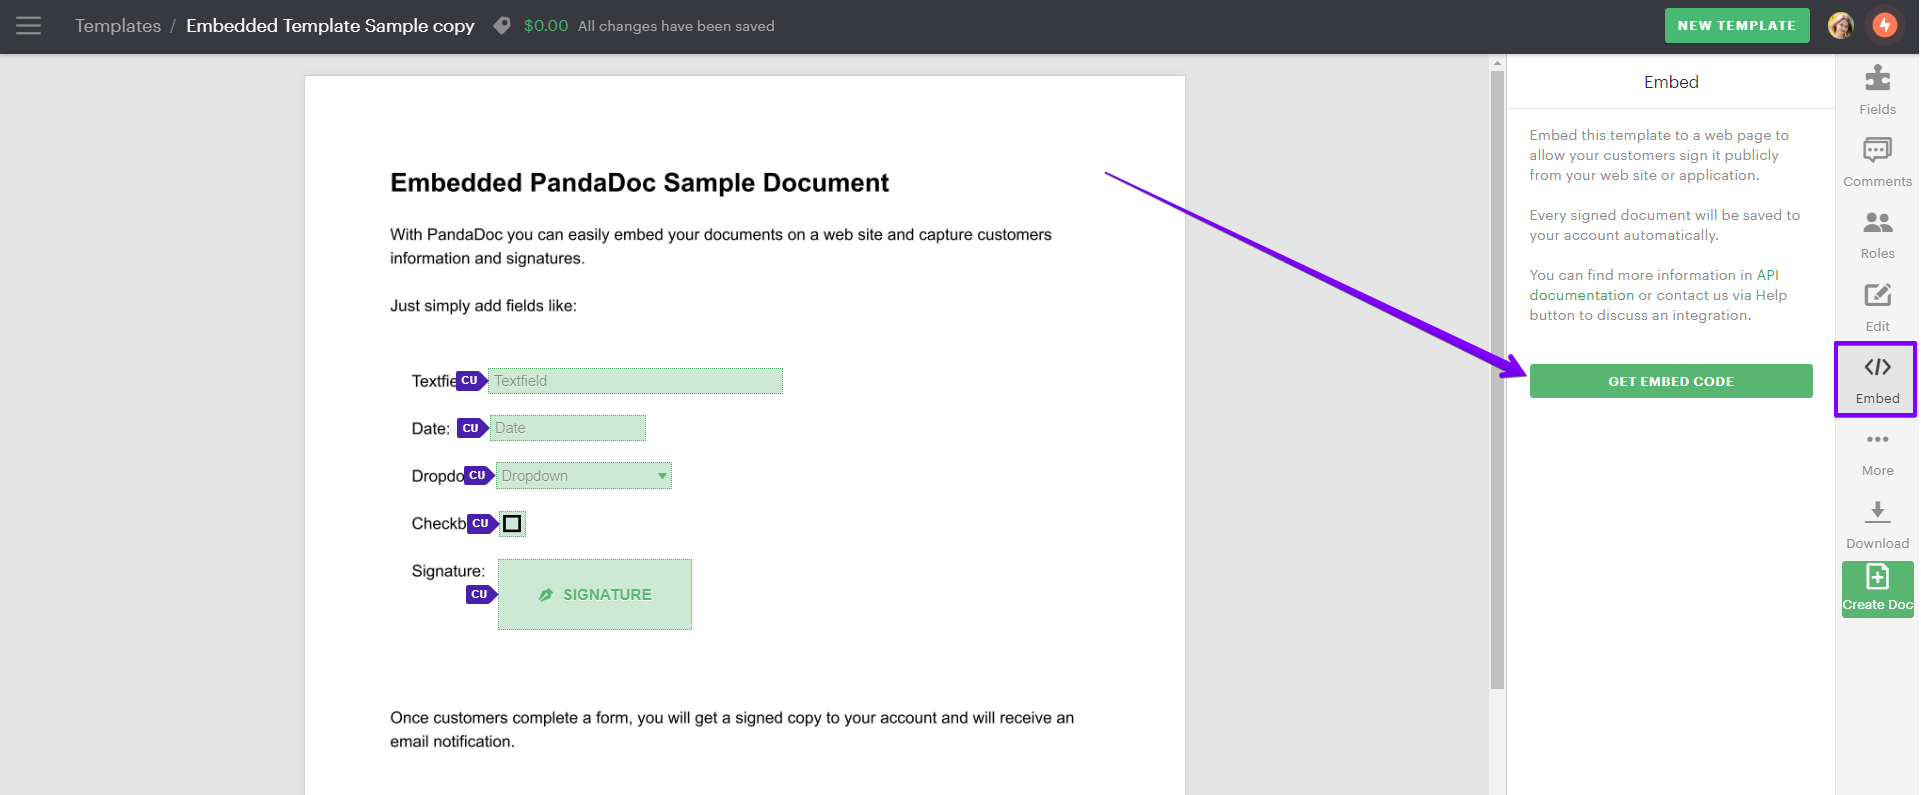 When template embedding is enabled, the *Embed* button will be available on the right panel.